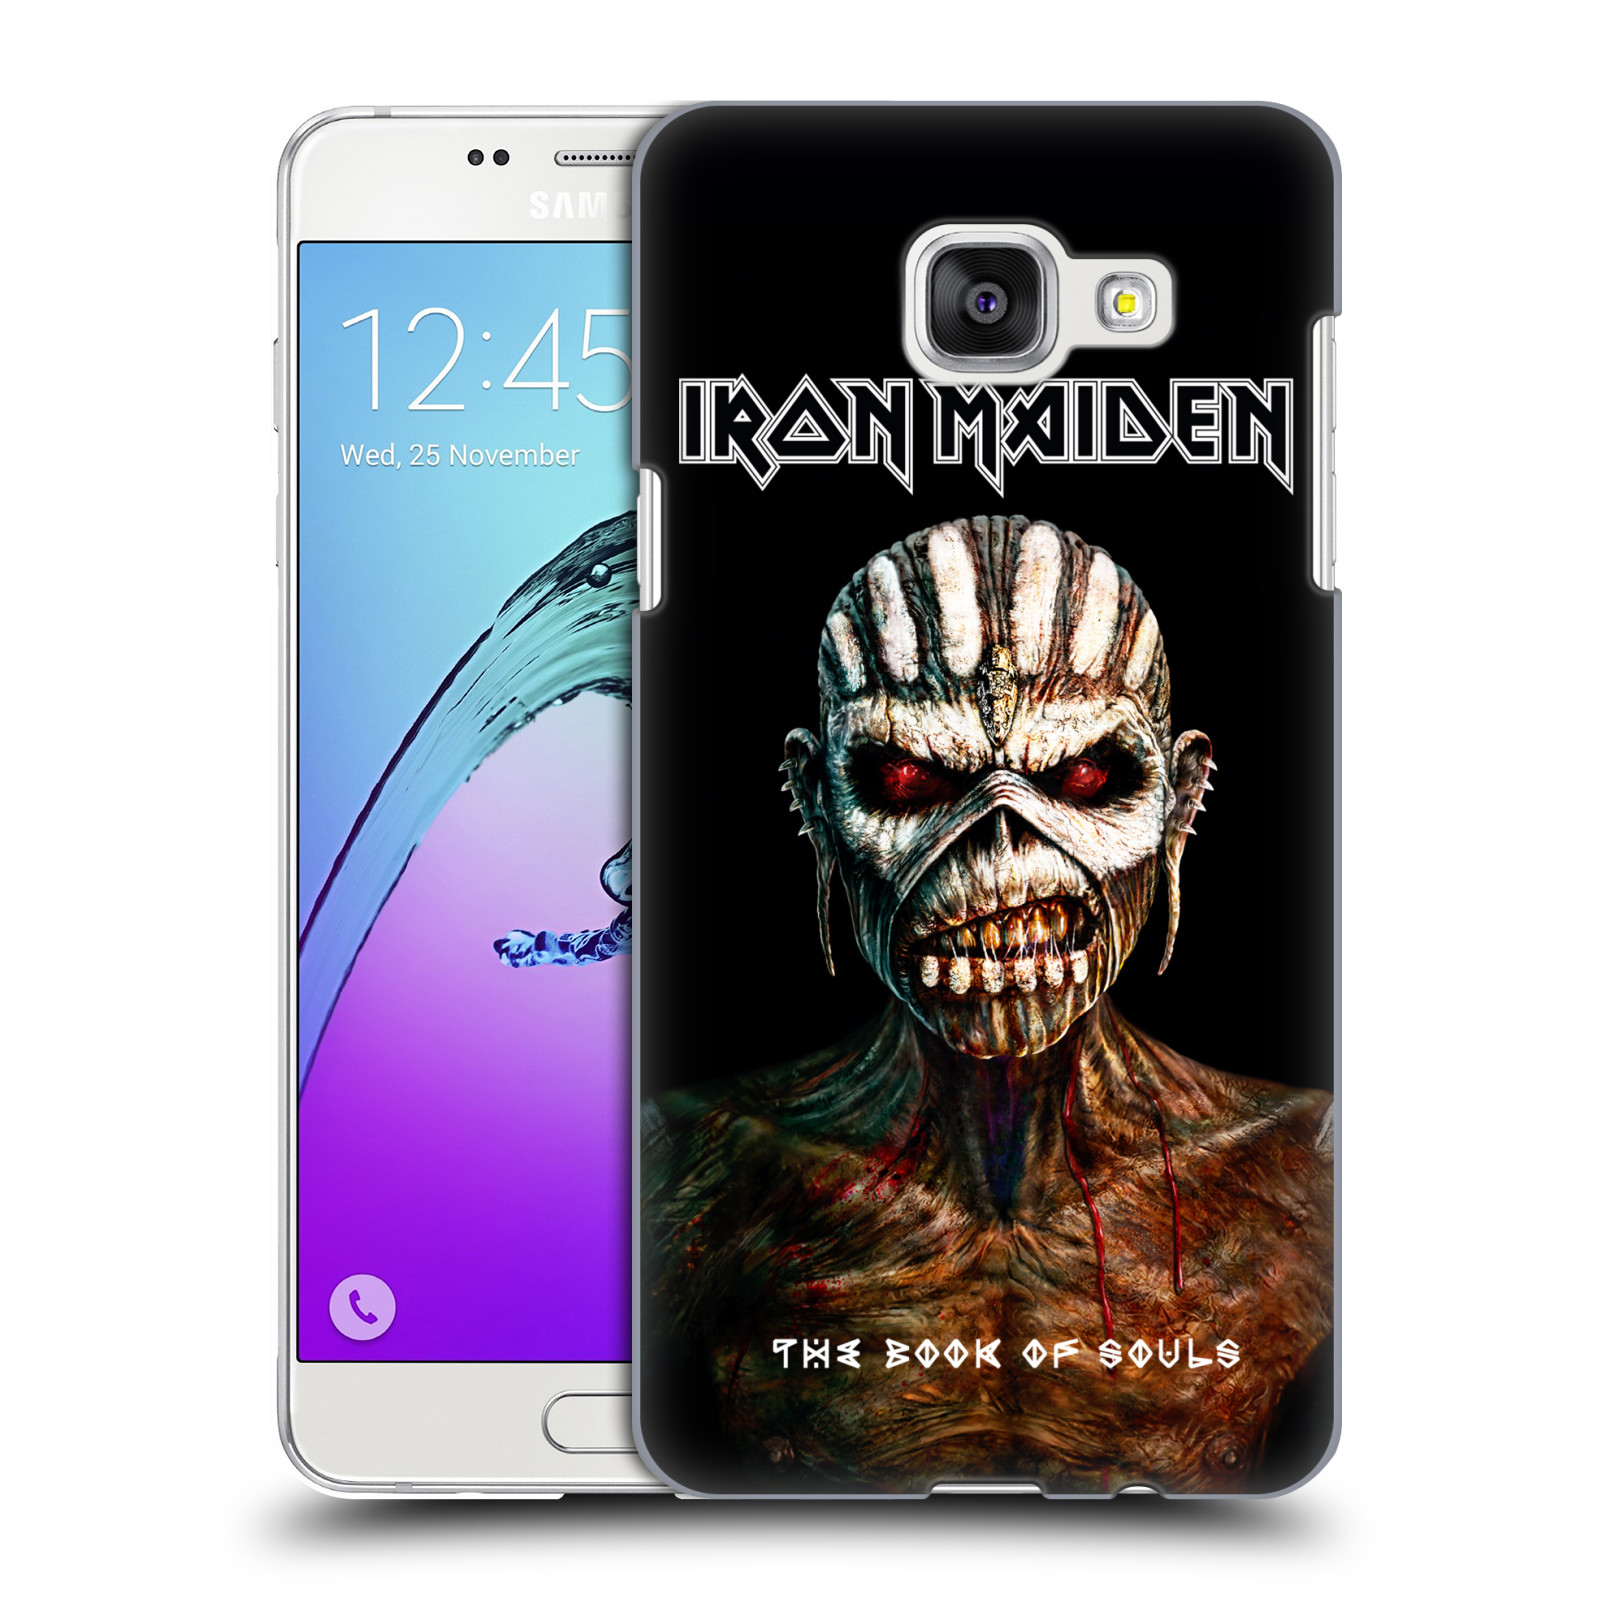 Plastové pouzdro na mobil Samsung Galaxy A5 (2016) HEAD CASE - Iron Maiden - The Book Of Souls